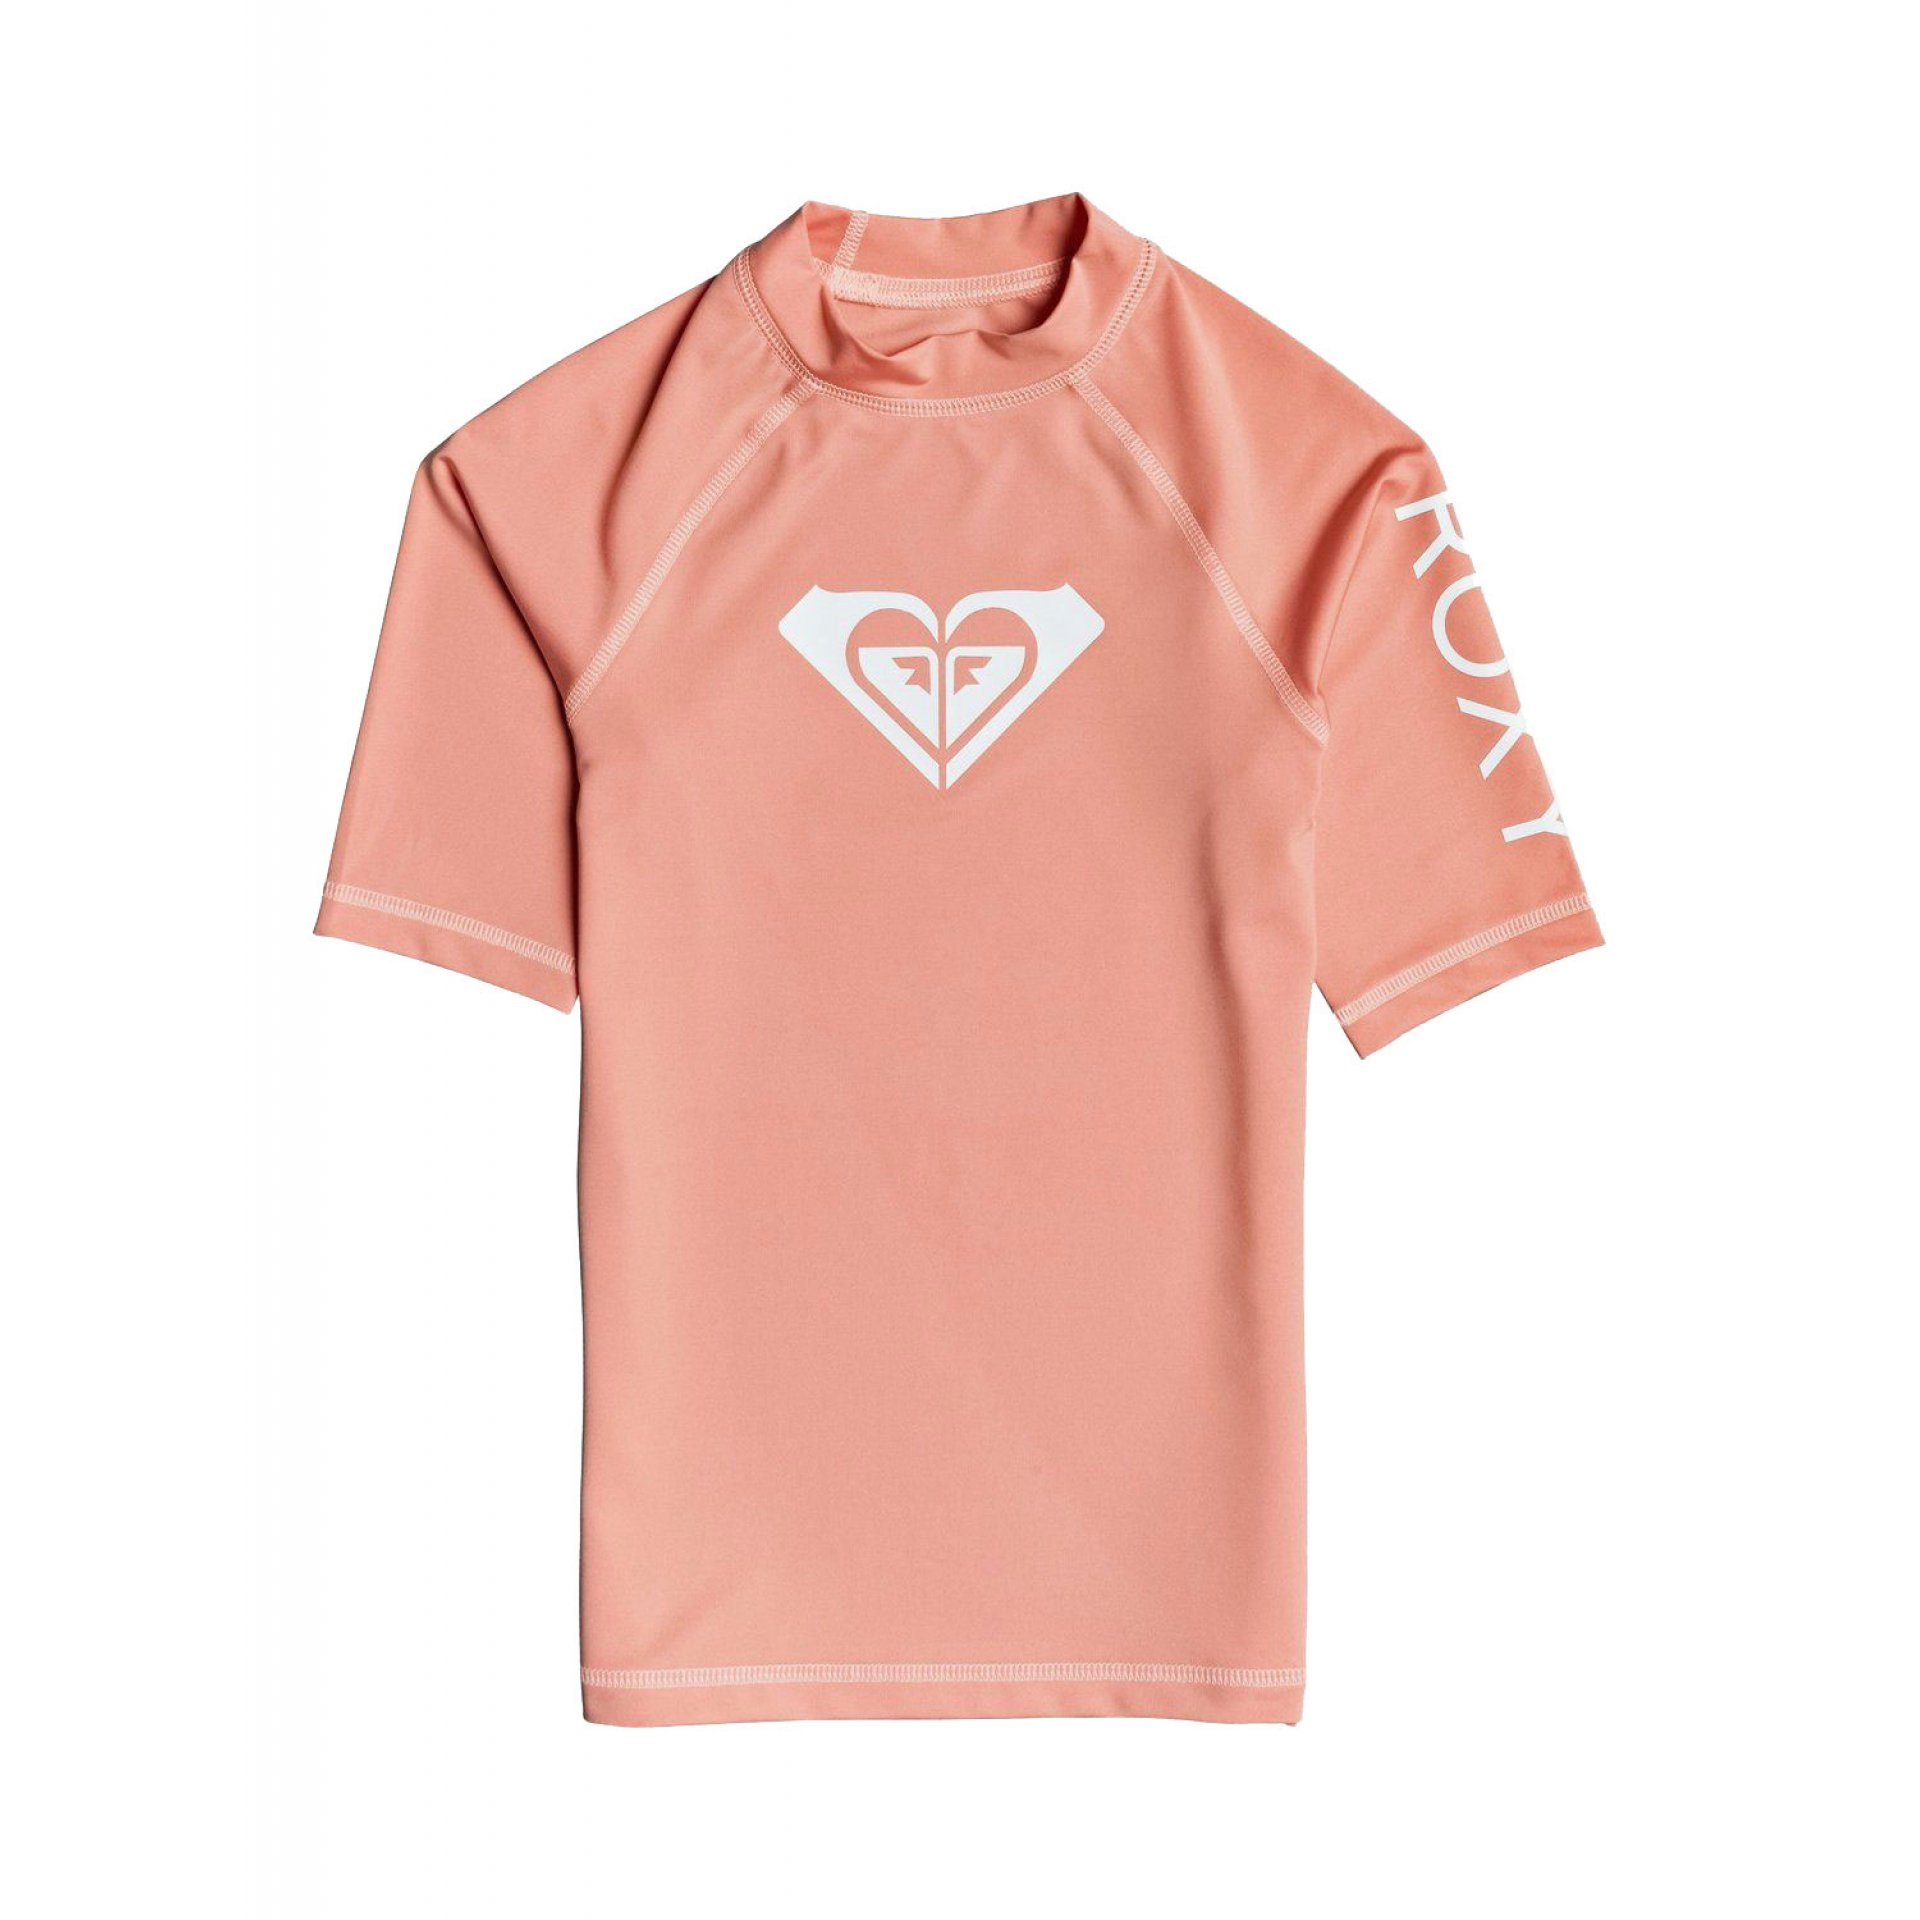 LYCRA ROXY GIRLS 8-16 WHOLE HEARTED SS ERGWR03183 MJN0